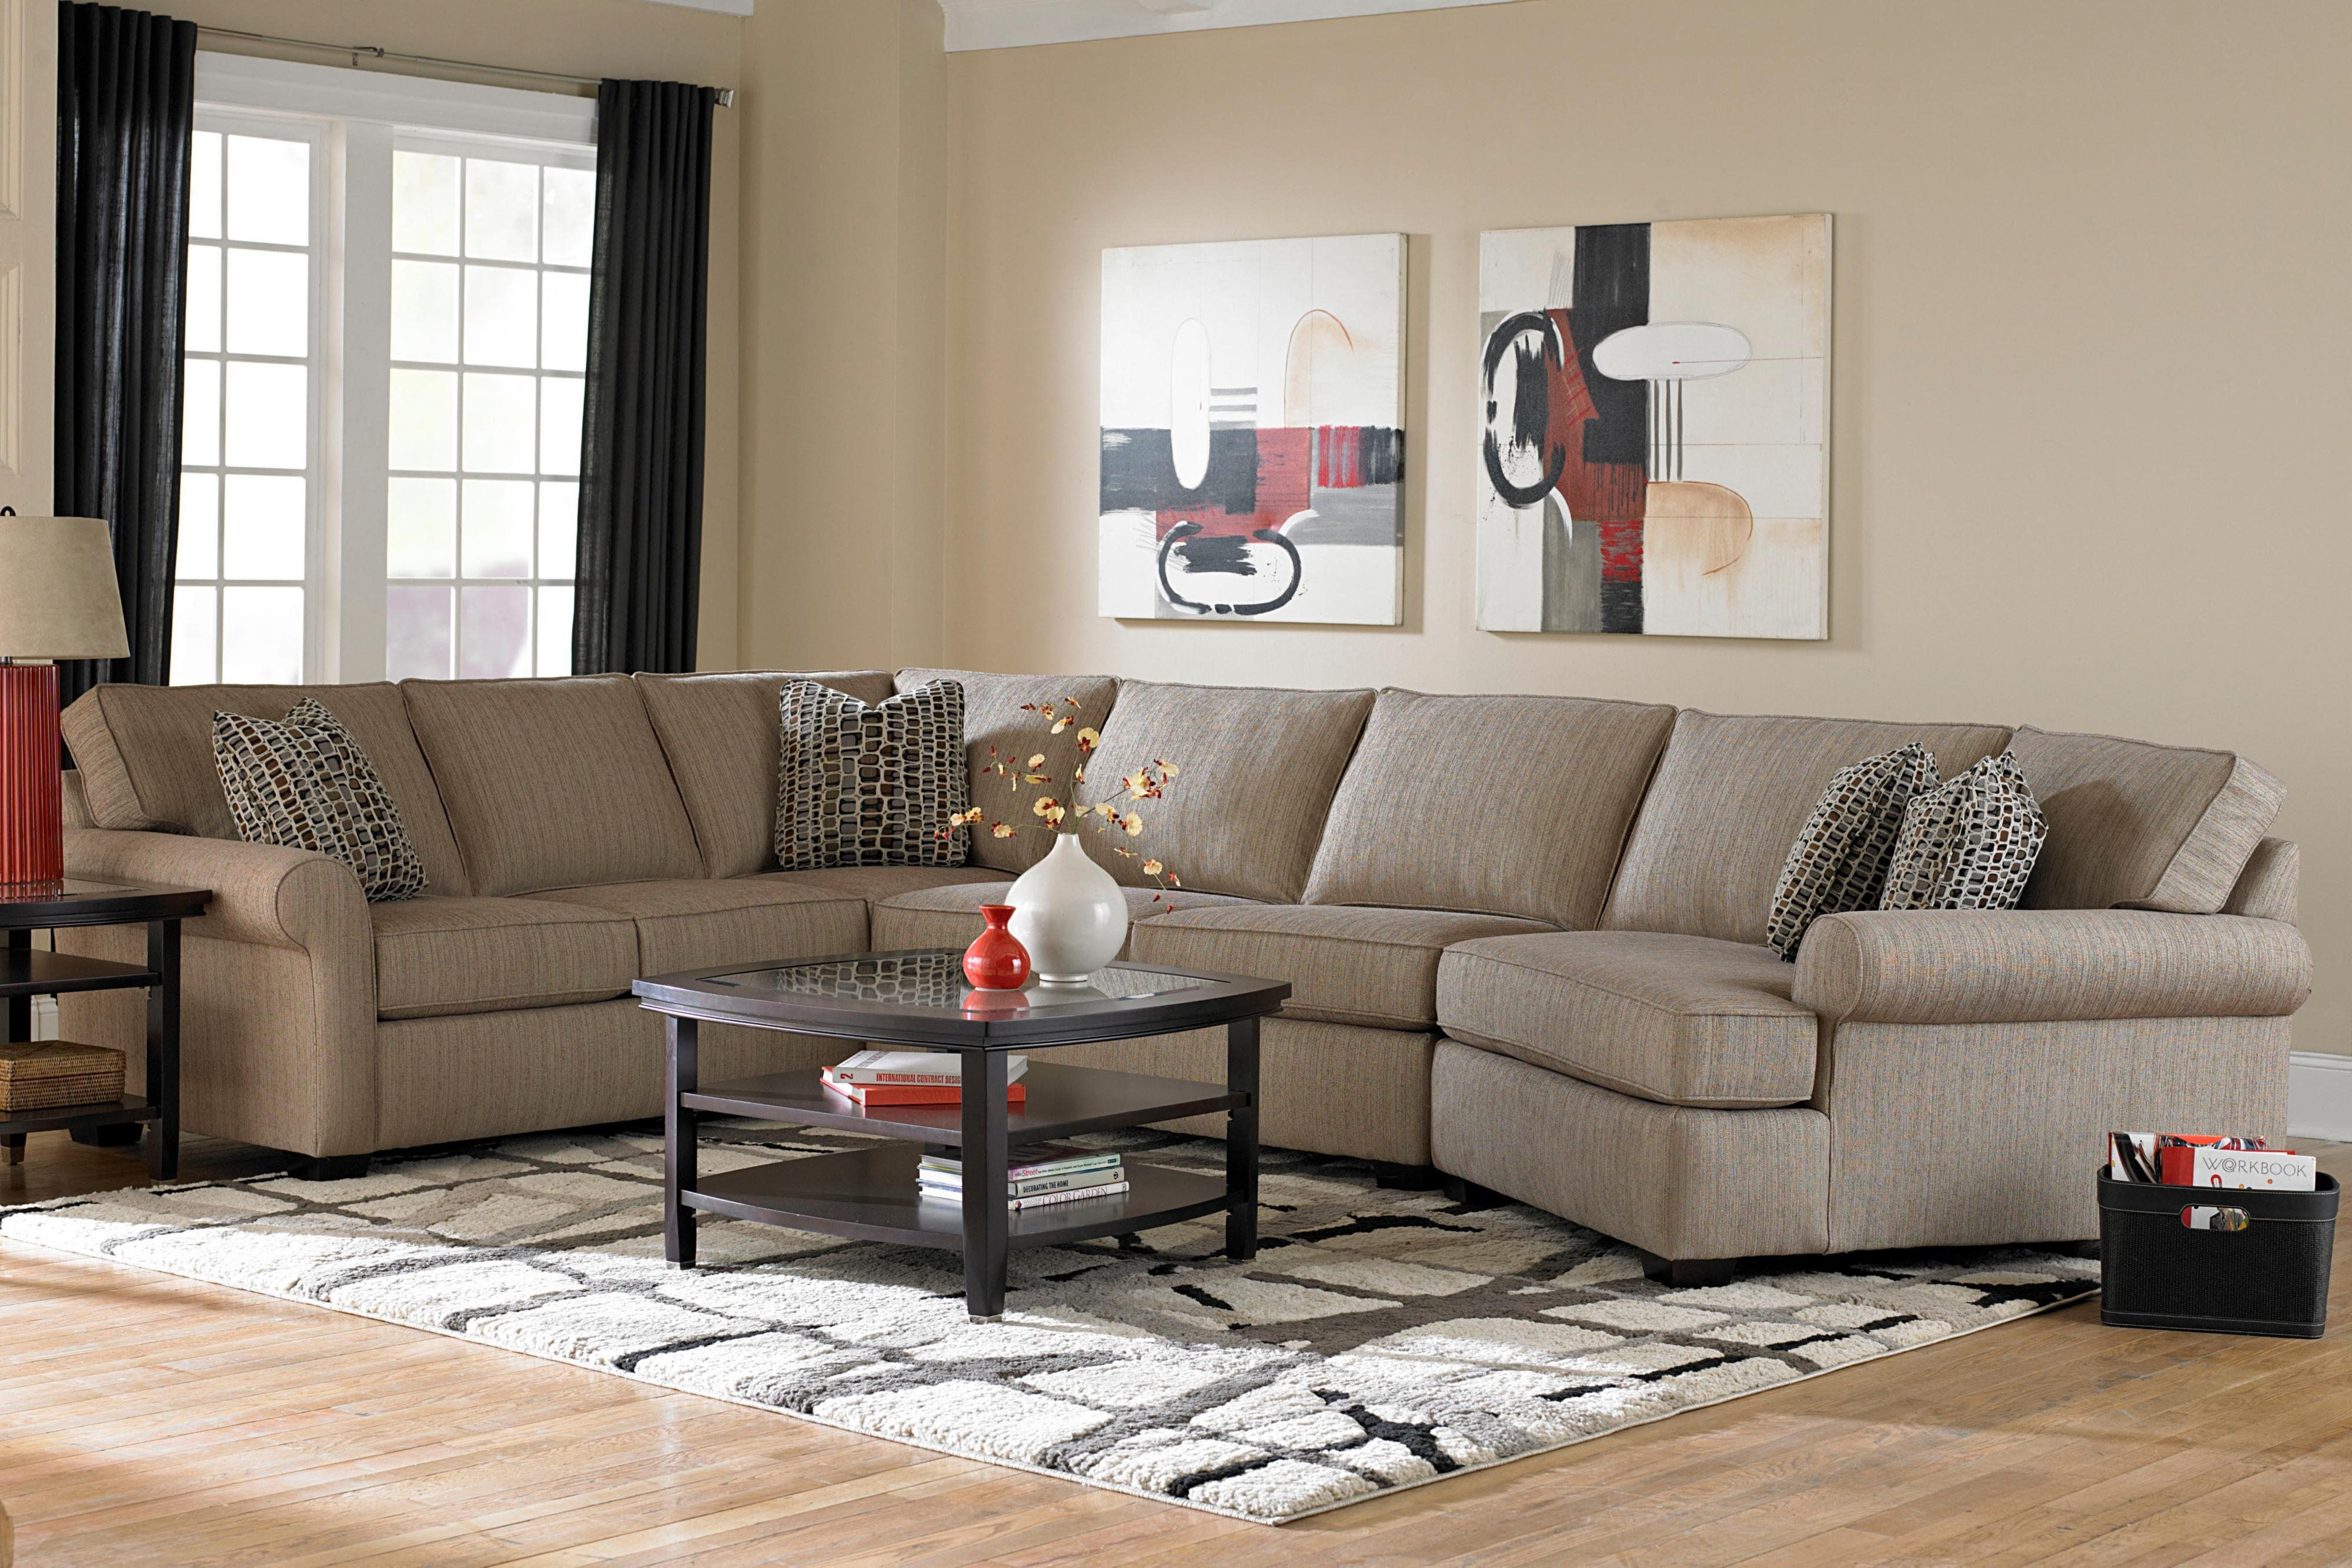 Latest Meyer 3 Piece Sectionals With Laf Chaise With Regard To Broyhill Furniture Ethan Transitional Sectional Sofa With Left (View 6 of 20)